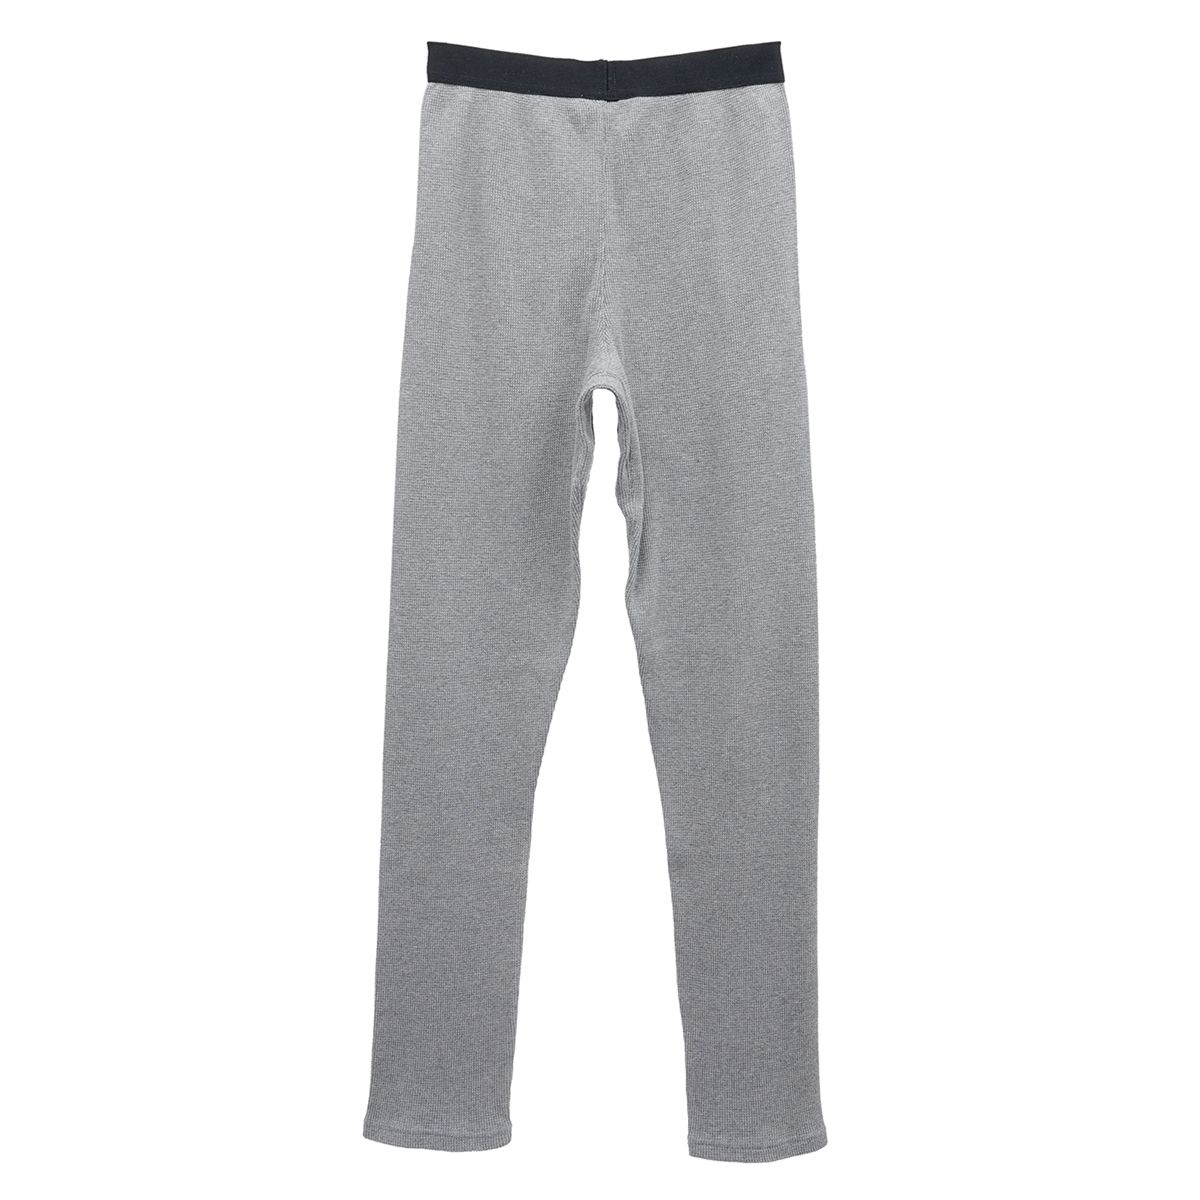 ESSENTIALS THERMAL PANT / 367 : HEATHER GREY